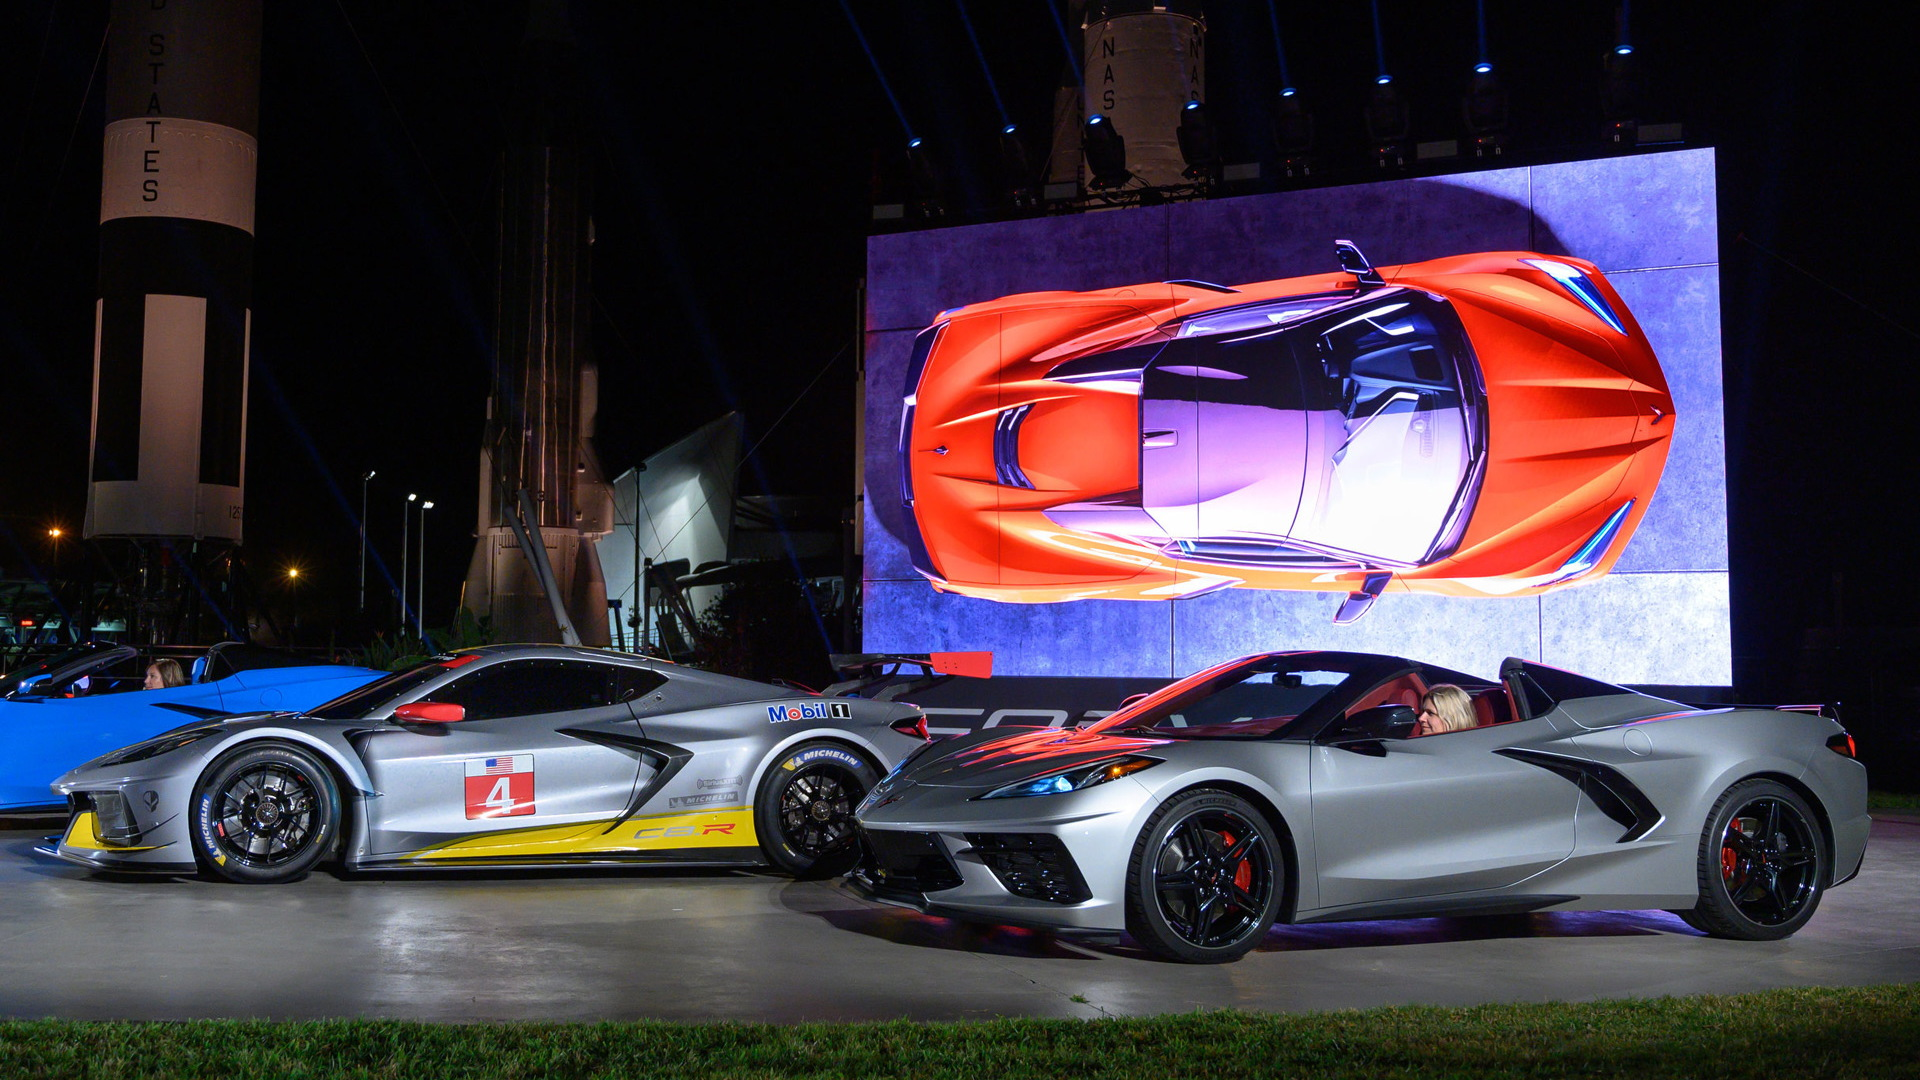 2020 Chevrolet Corvette C8.R race car and Corvette Stingray Convertible